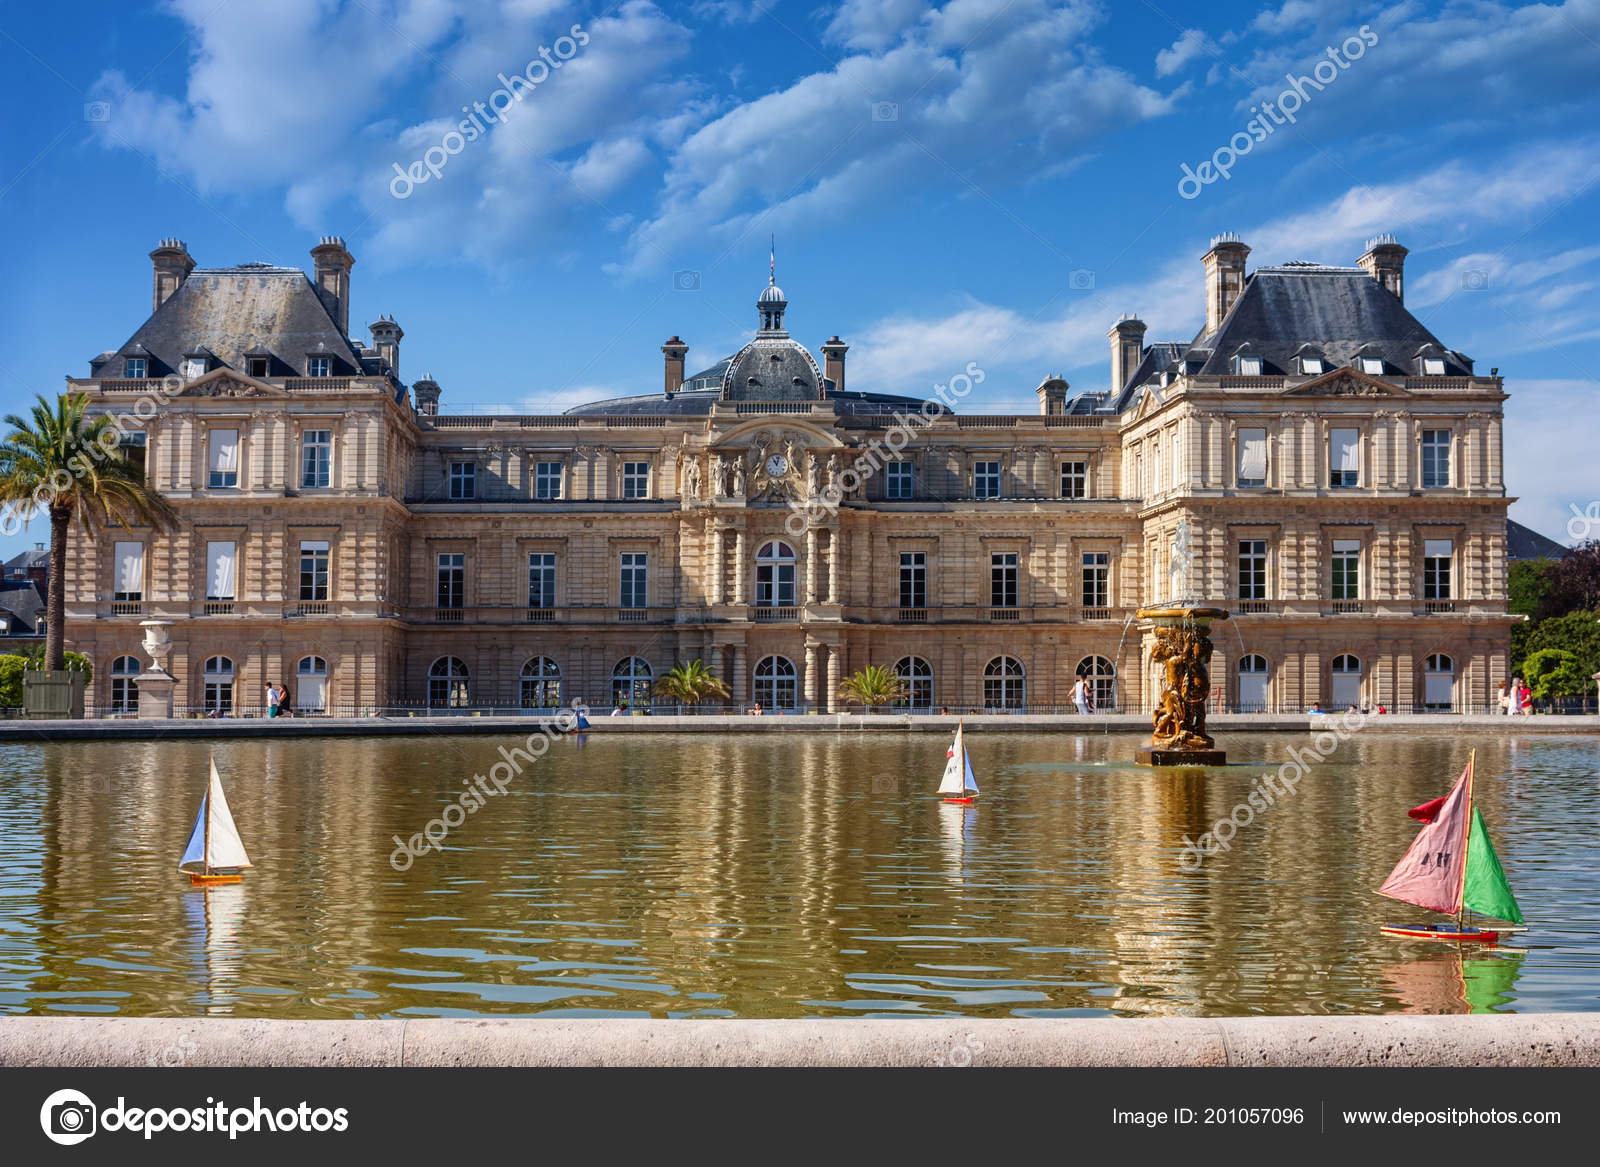 Parisian Citylandscape View Pool Floating Toy Sailboats